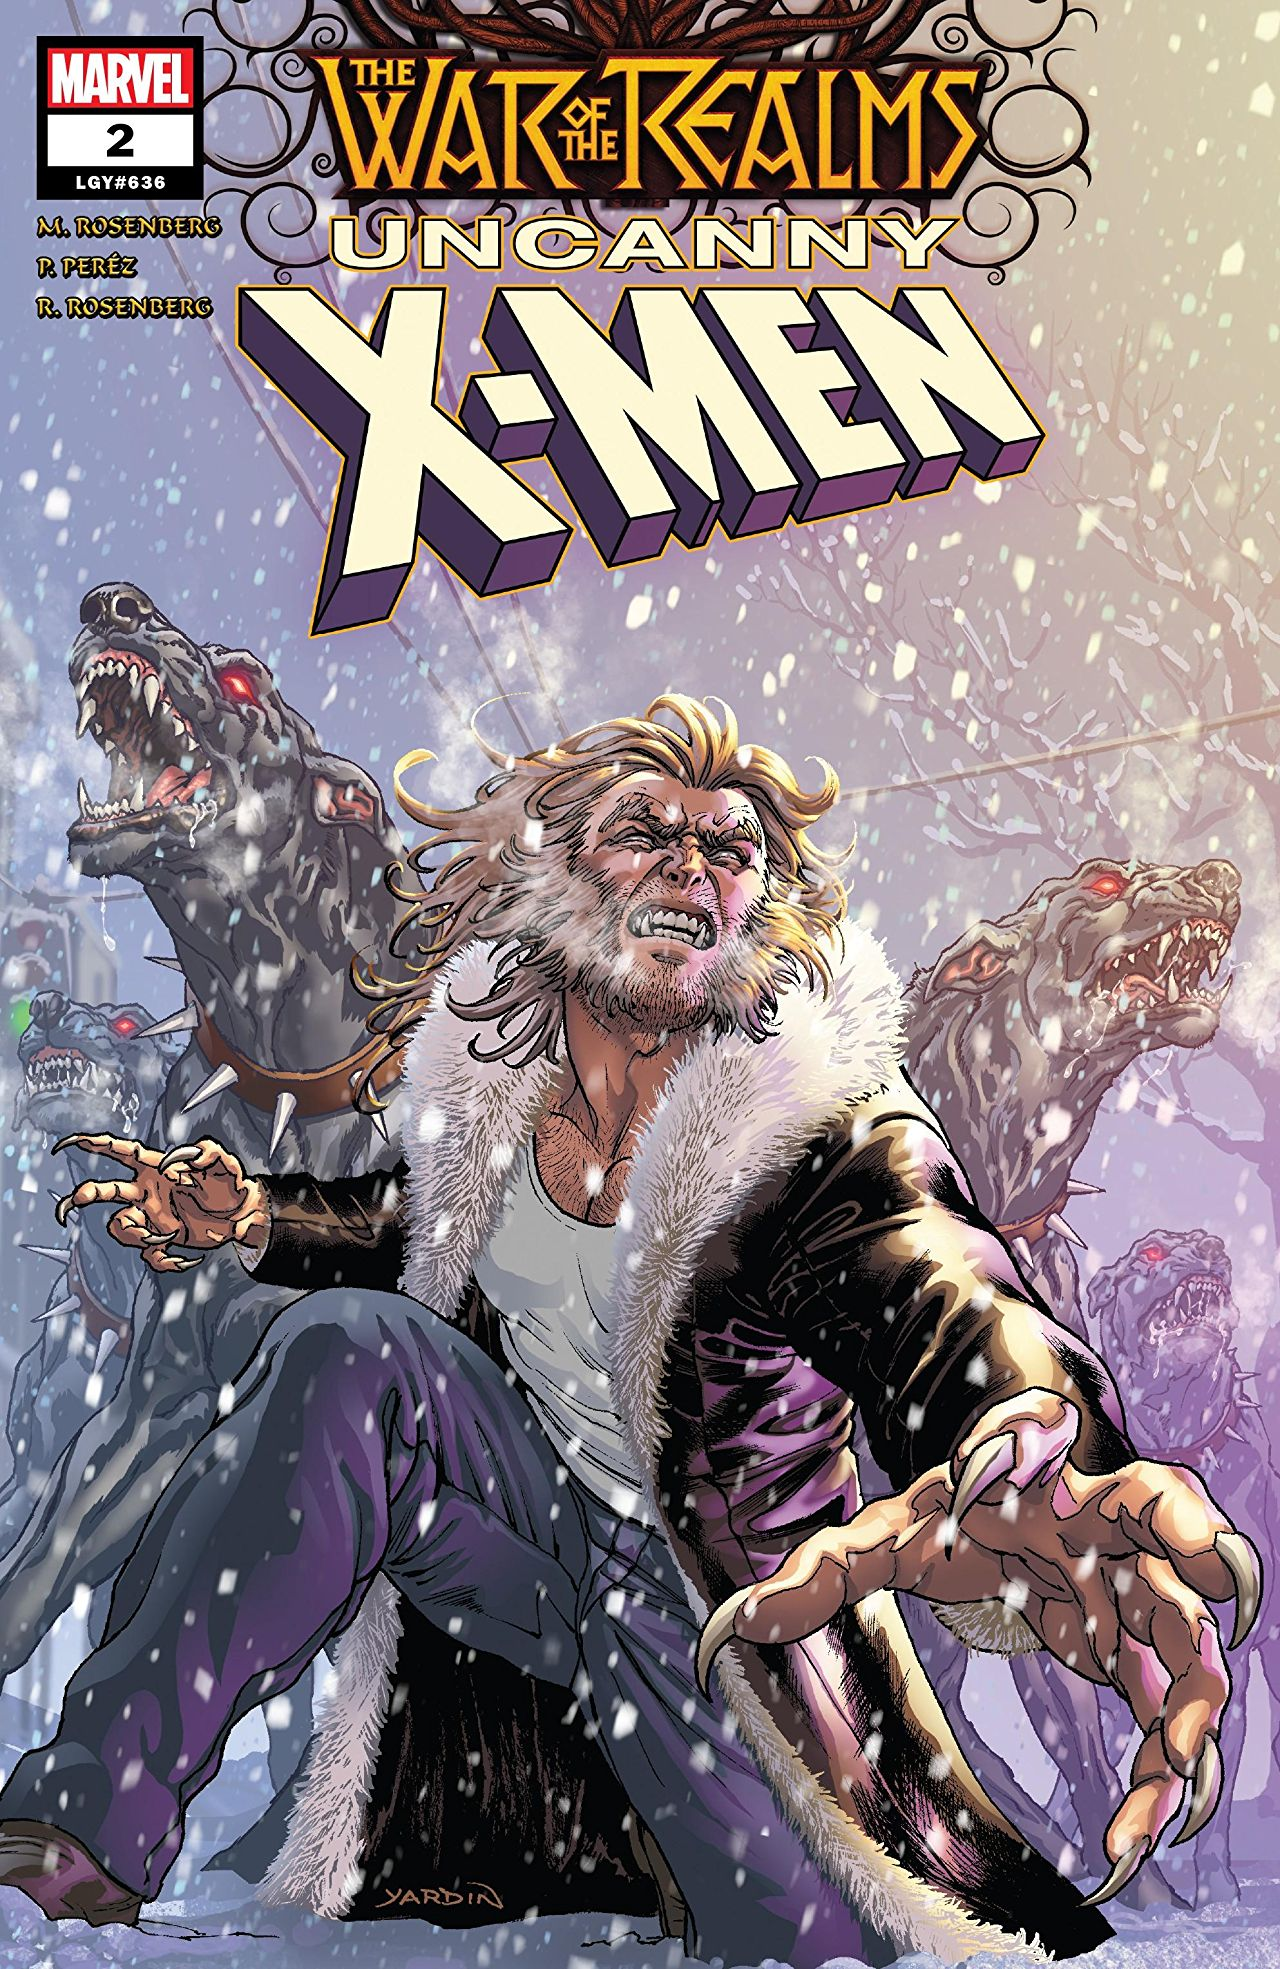 Marvel Preview: War of the Realms: Uncanny X-Men #2